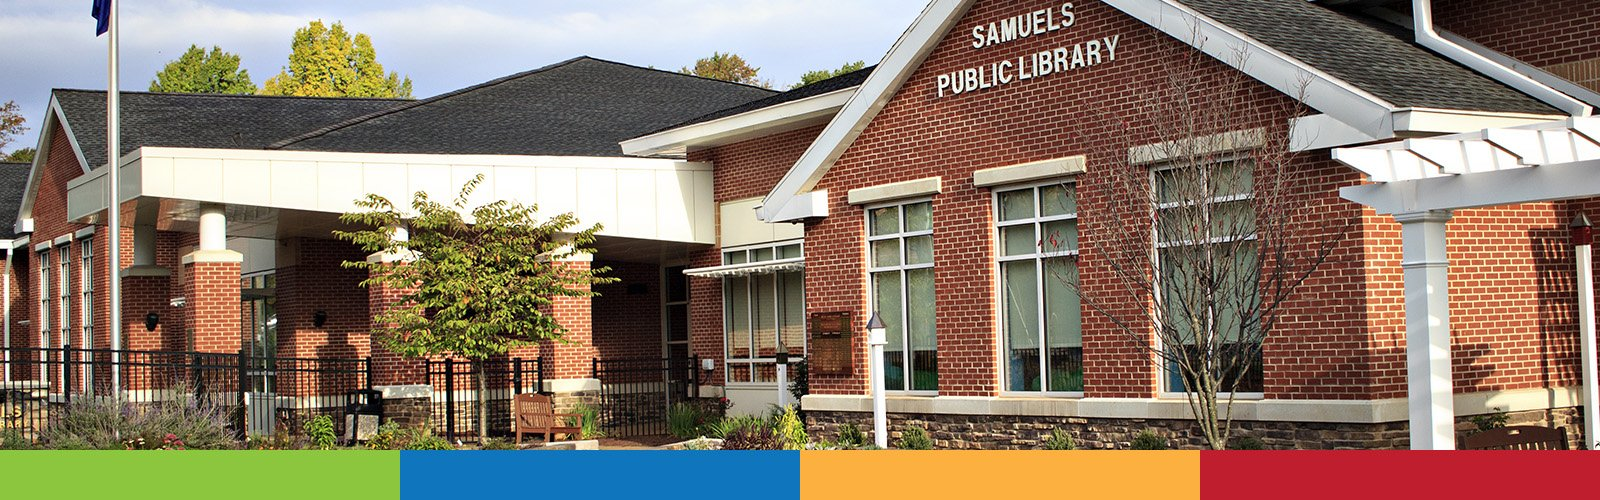 Friends of Samuels Library